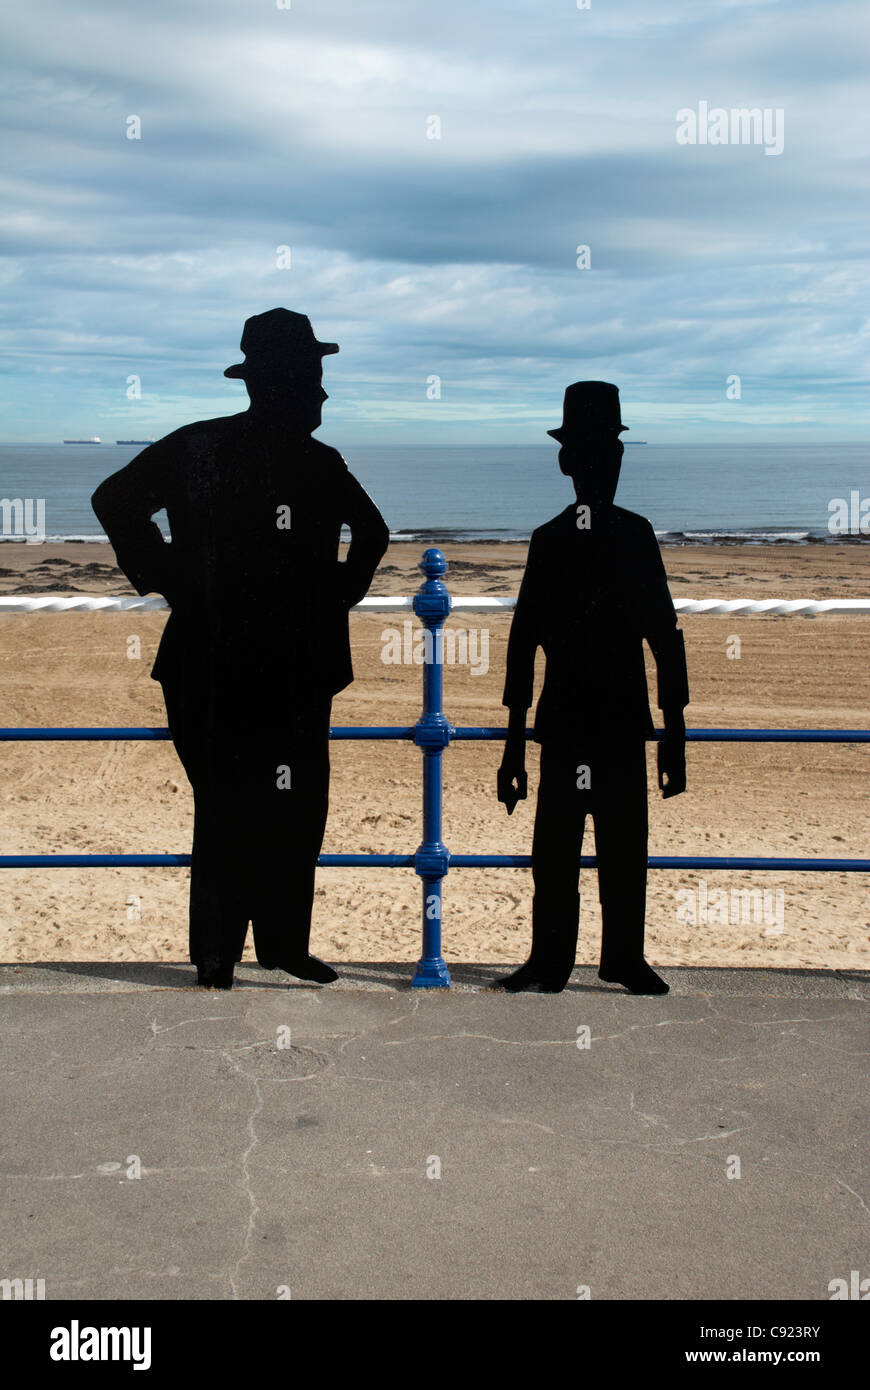 UK, Cleveland, Redcar, Laurel & Hardy silhouettes, Redcar sea front - Stock Image